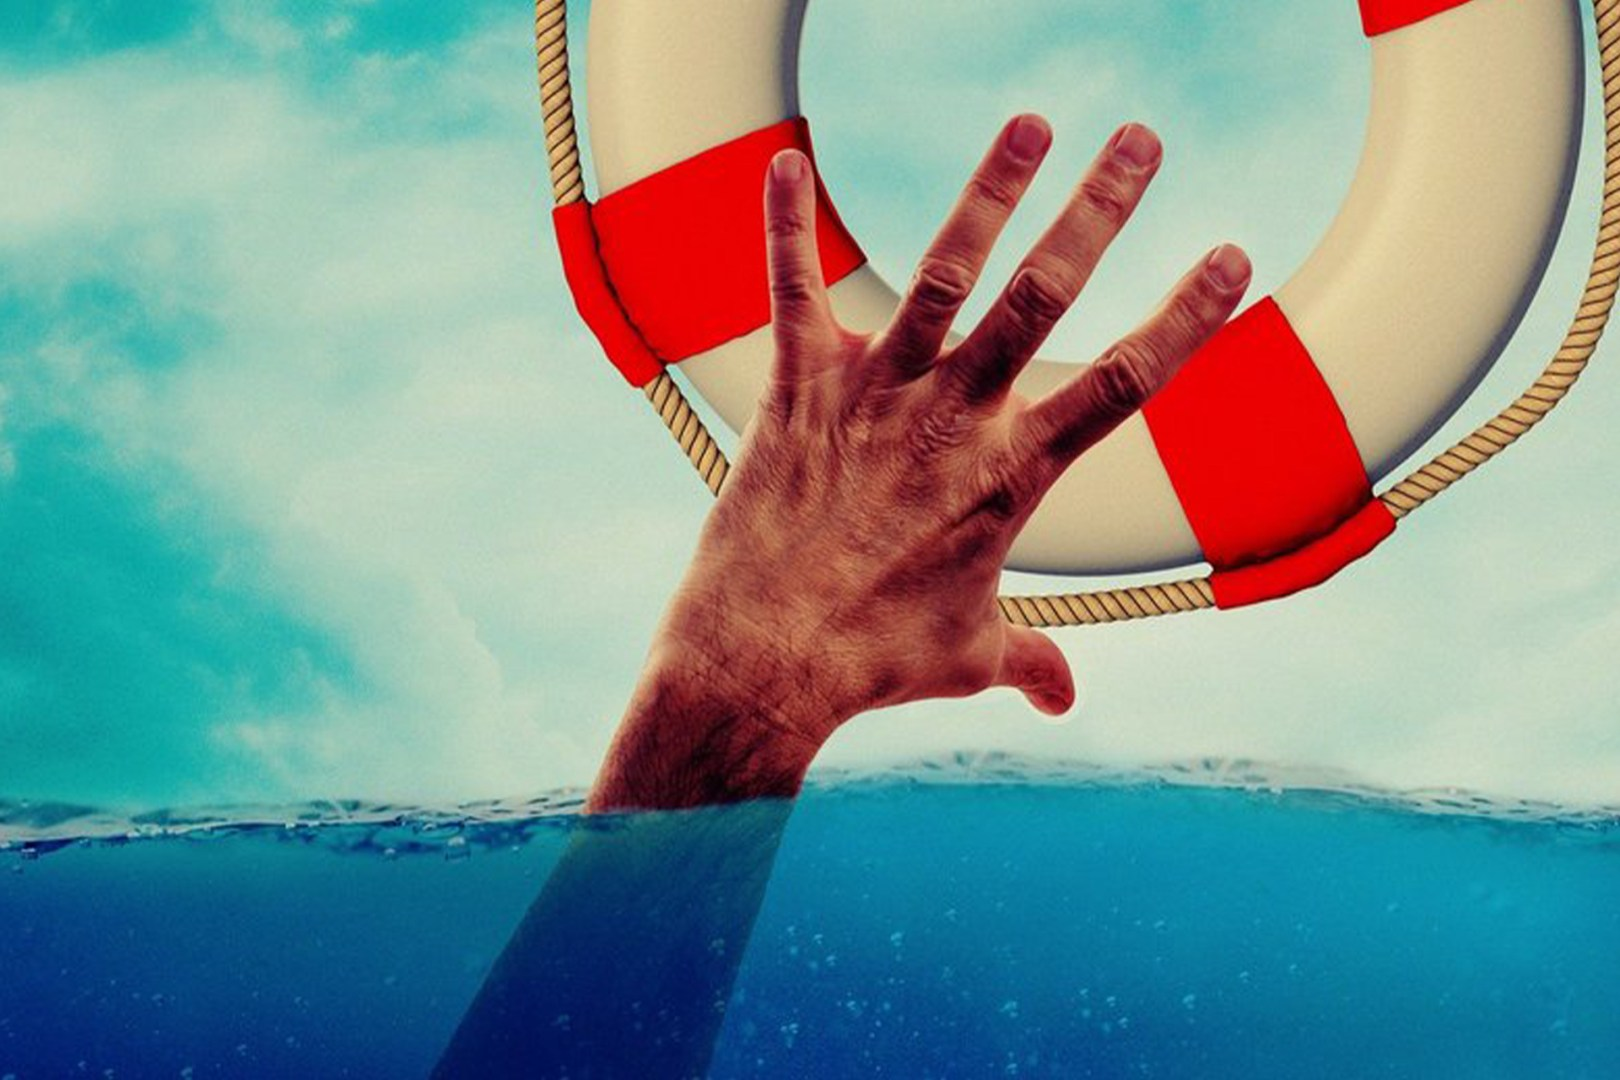 A man's hand reaching out of water for a lifebuoy.